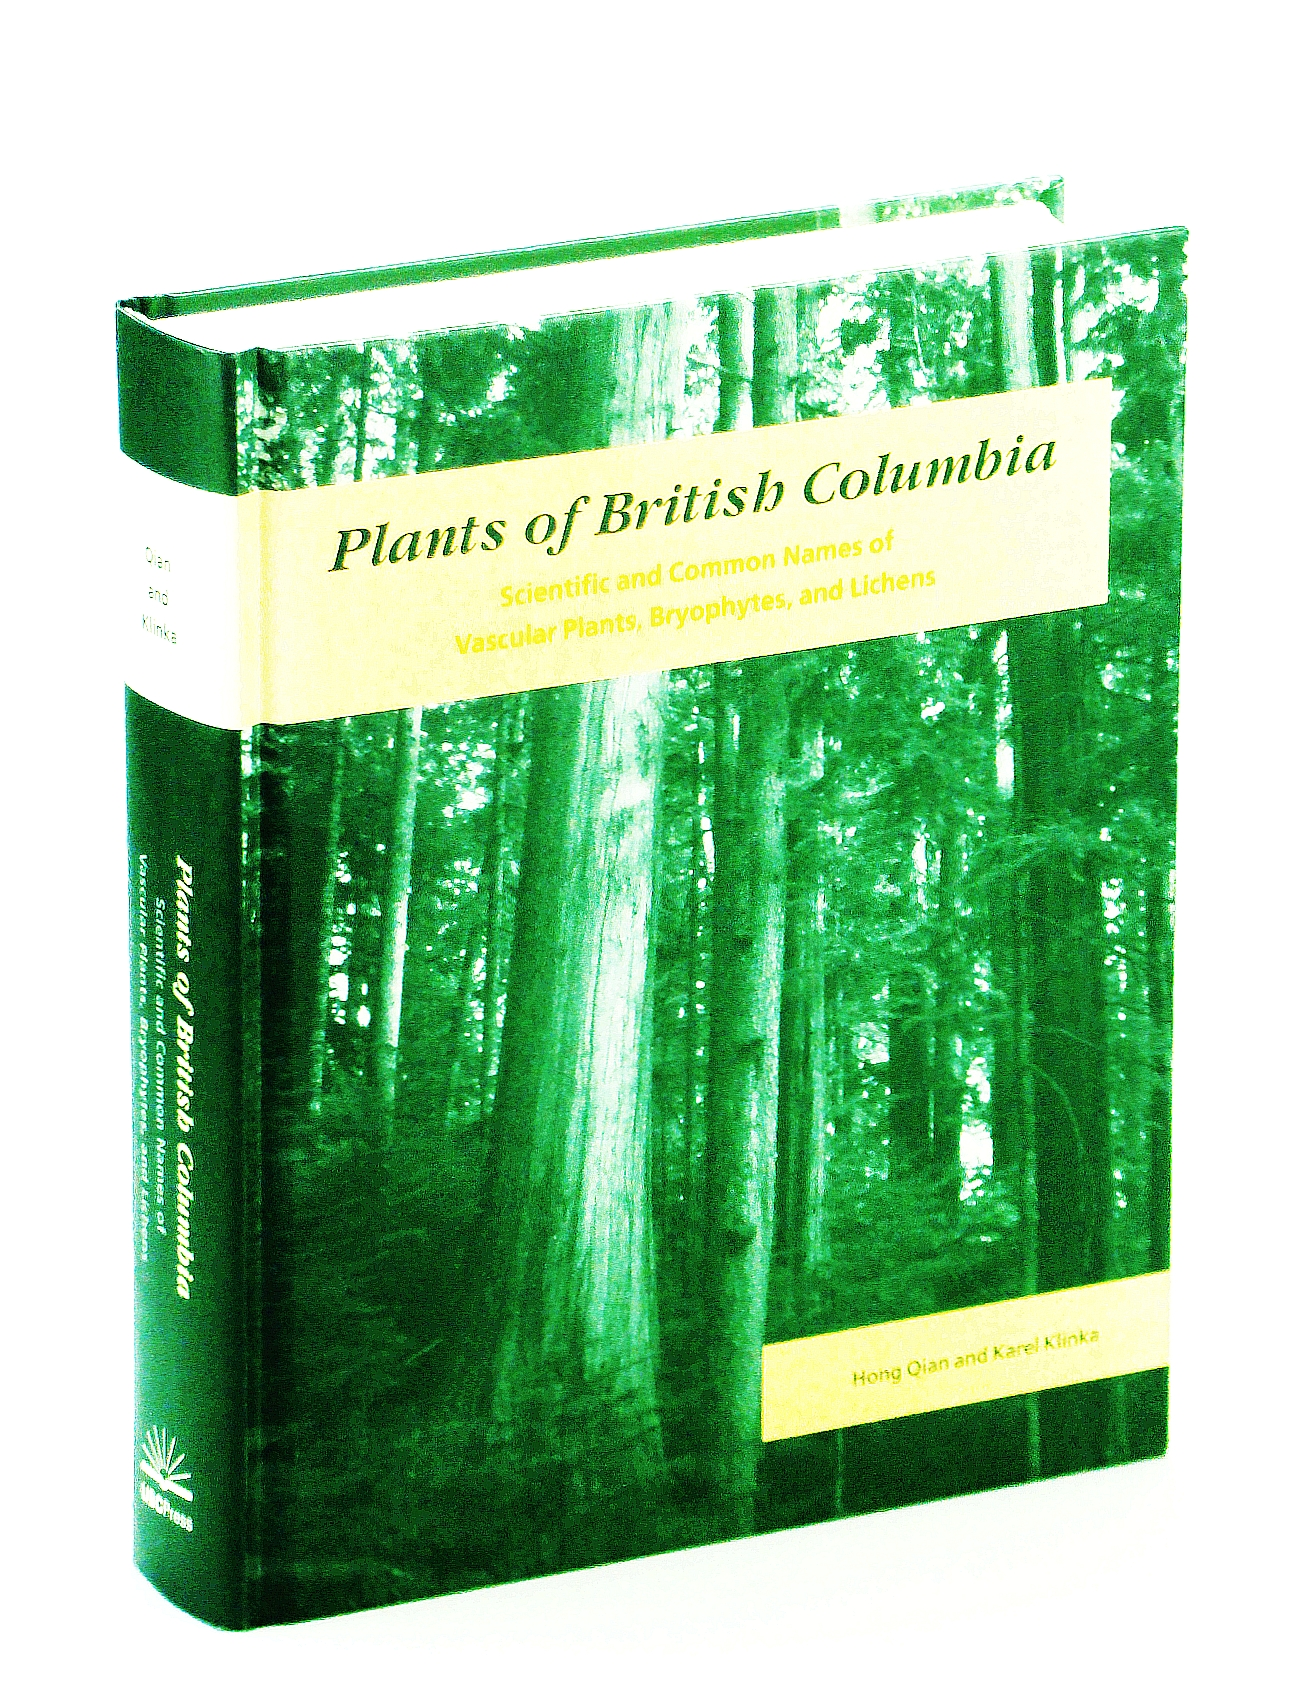 Image for Plants of British Columbia: Scientific and Common Names of Vascular Plants, Bryophytes, and Lichens